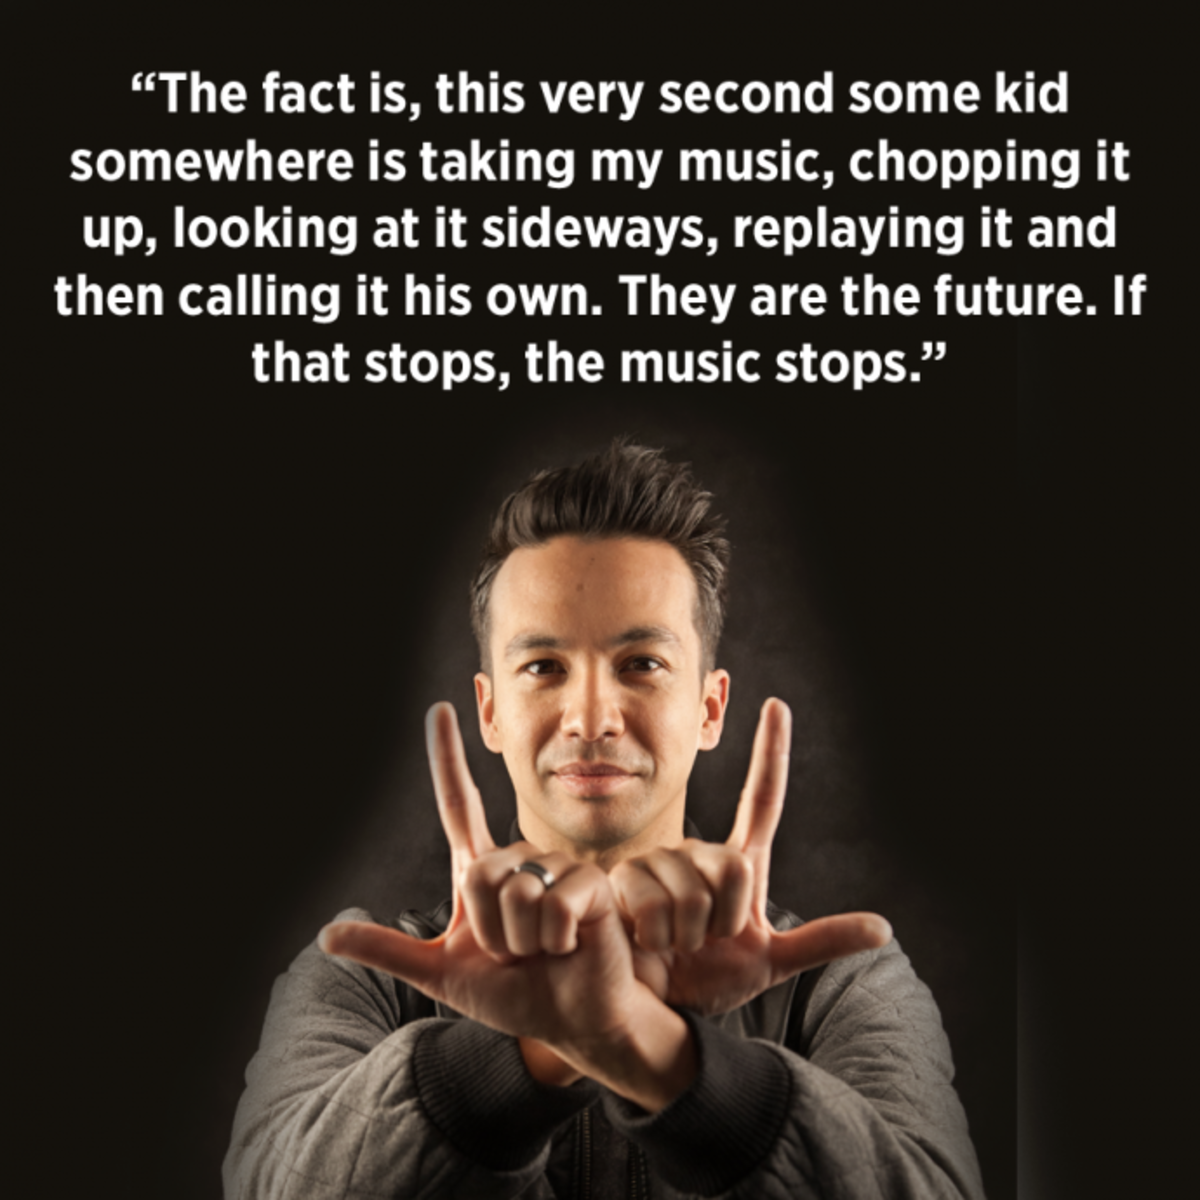 Laidback Luke Defends 'Blurred Lines'